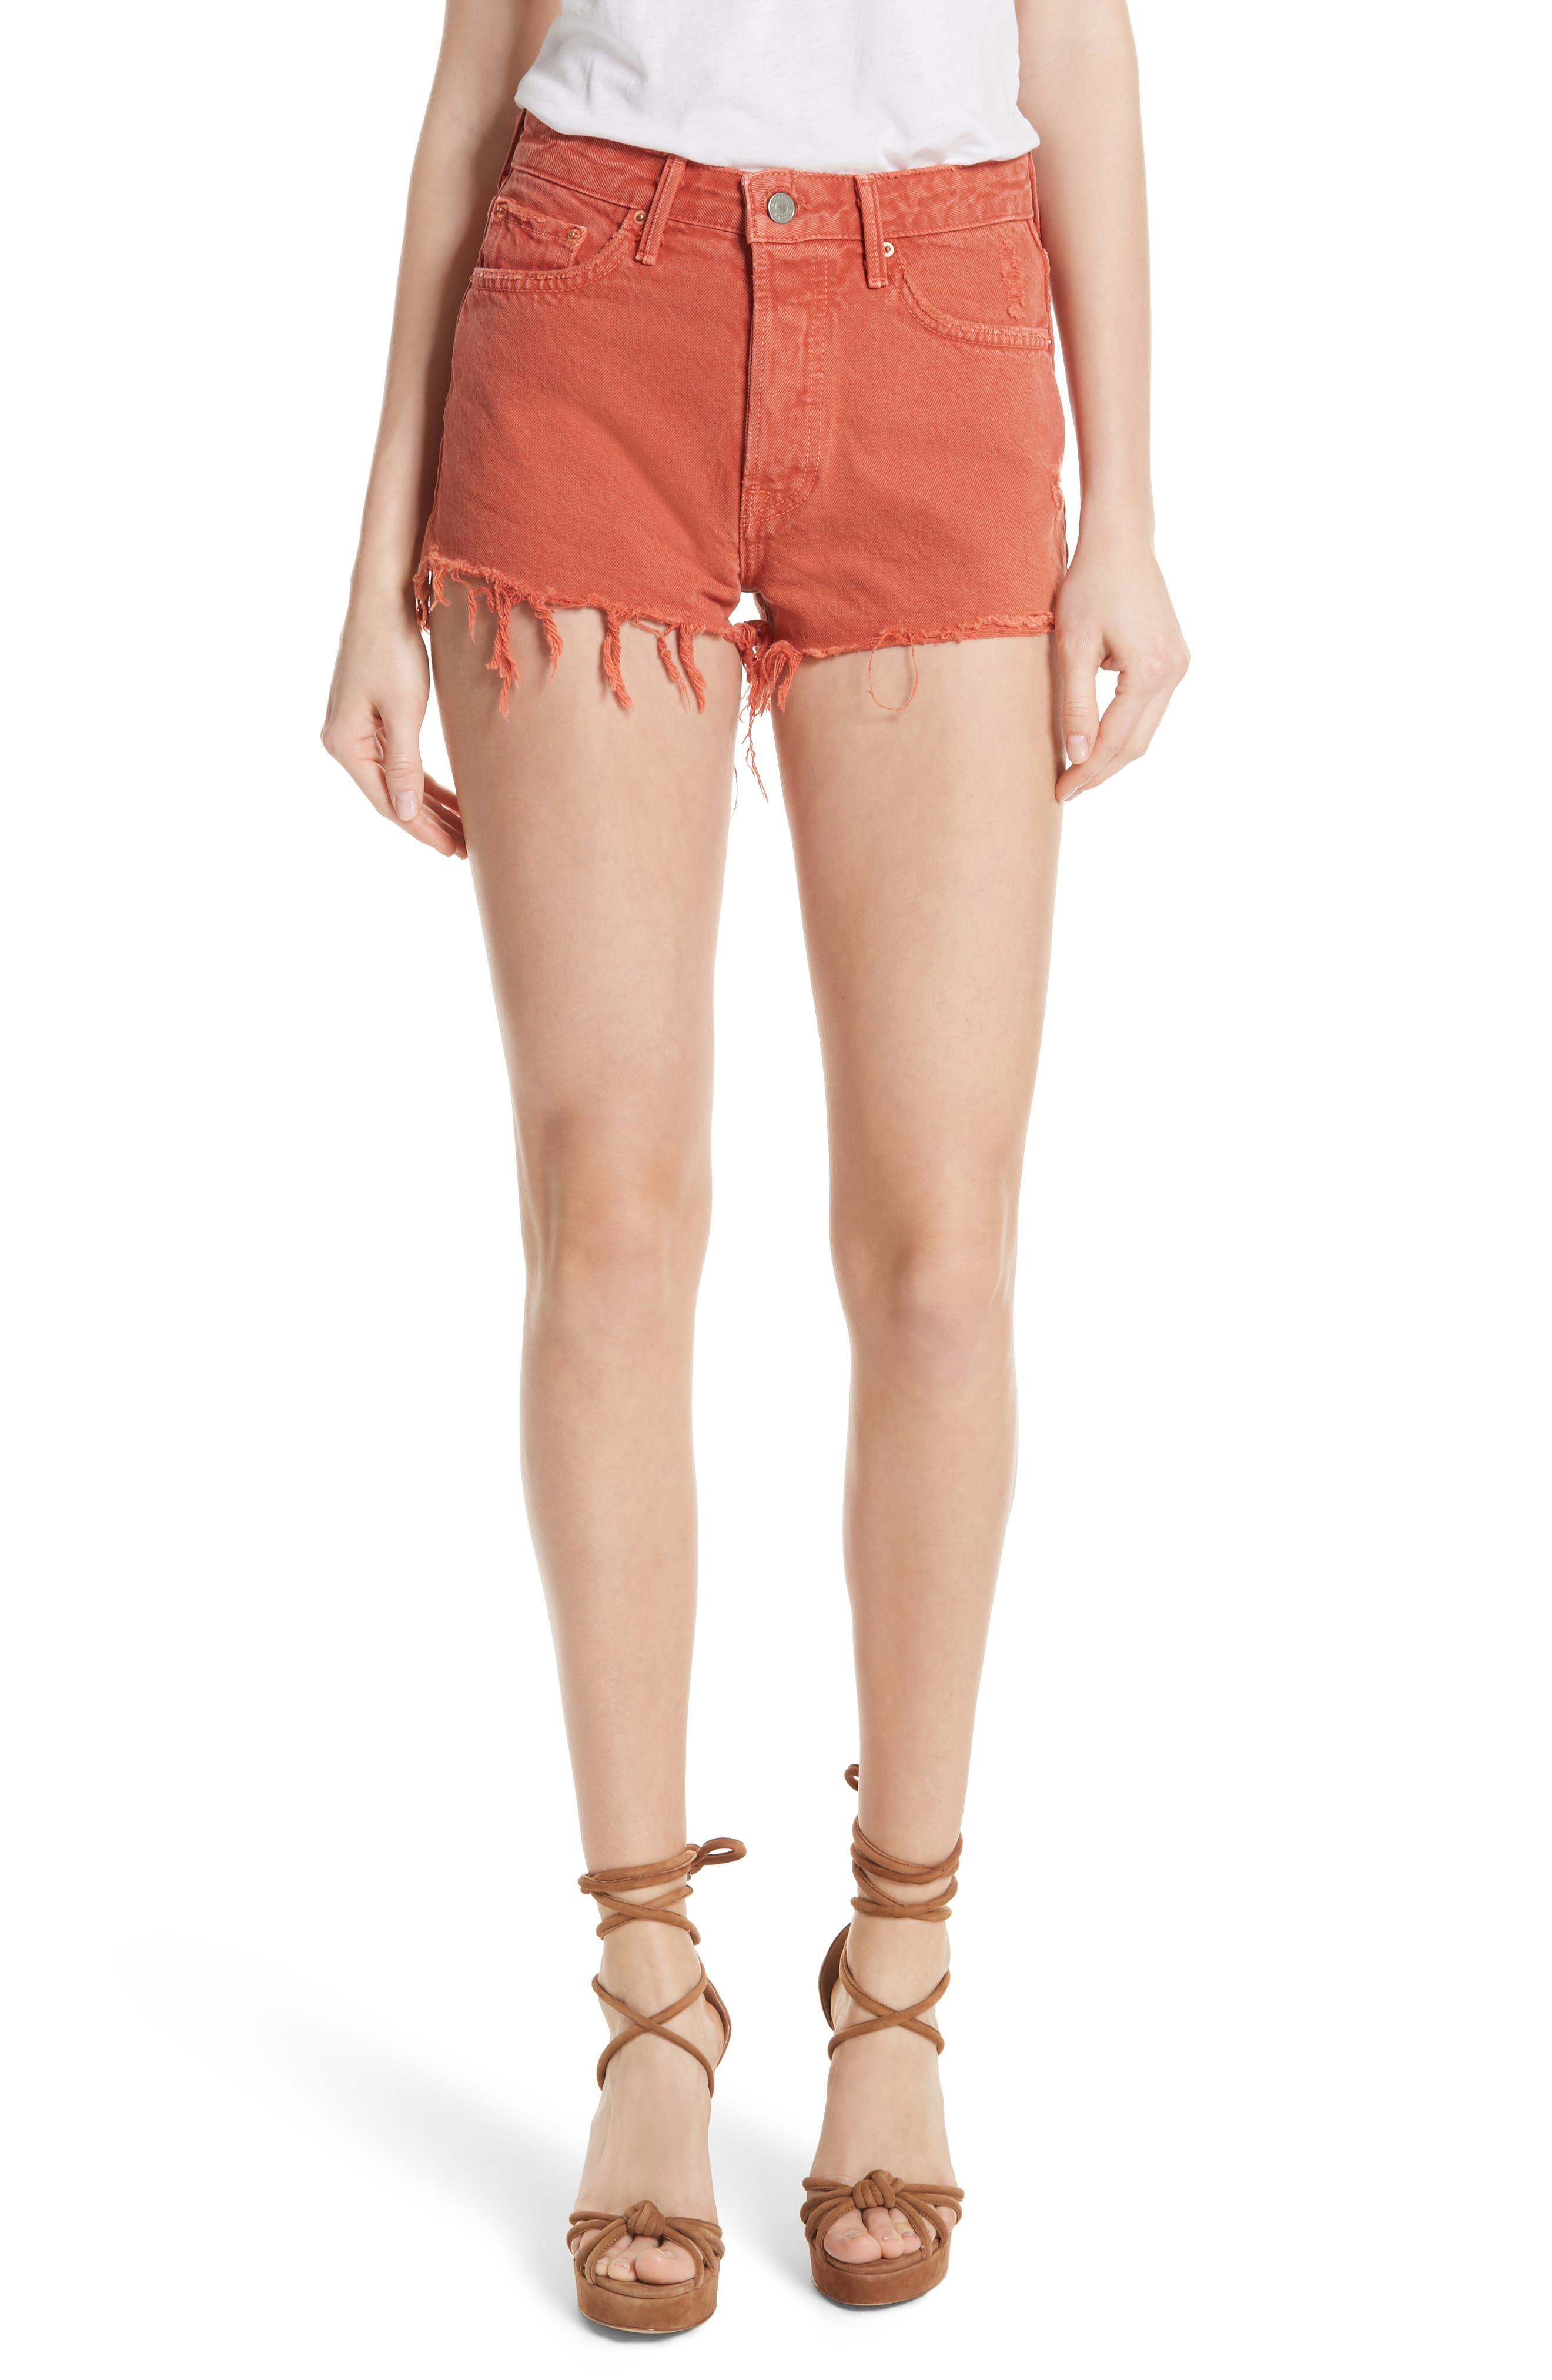 Cindy Rigid High Waist Denim Shorts,                             Main thumbnail 1, color,                             Spice Market